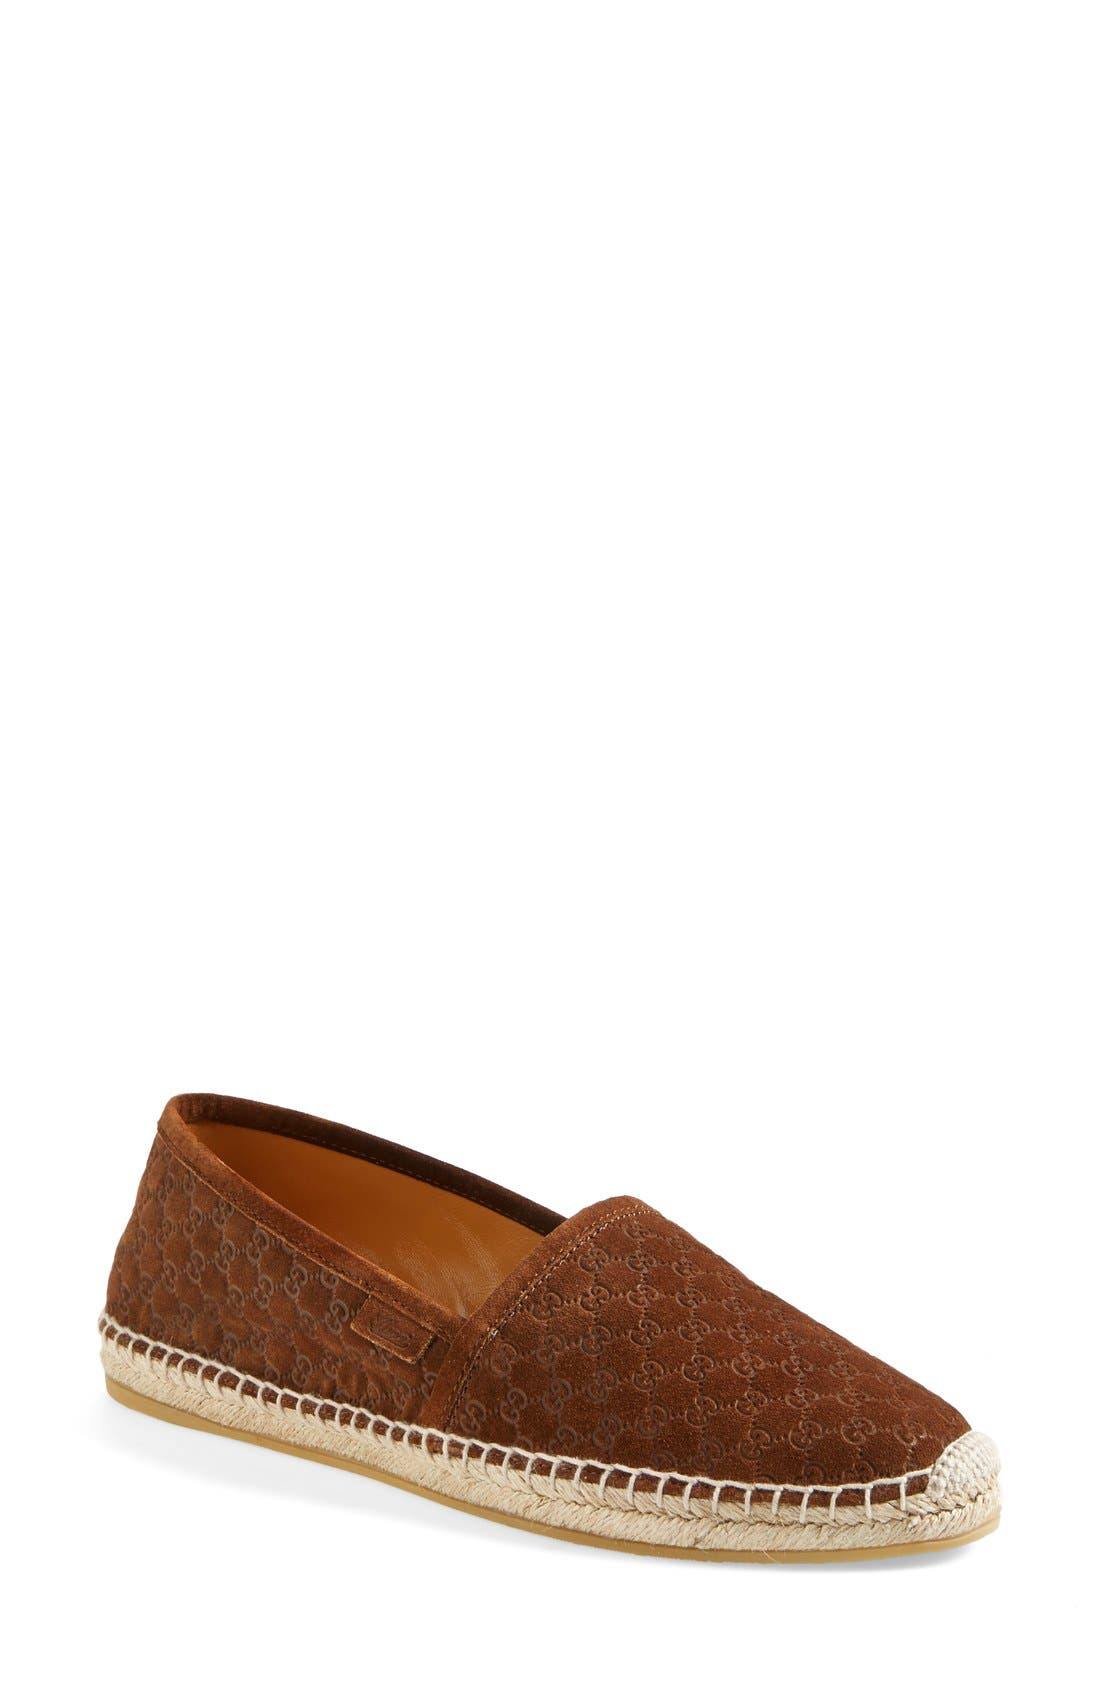 Alternate Image 1 Selected - Gucci Pilar Guccissima Espadrille Flat (Women)